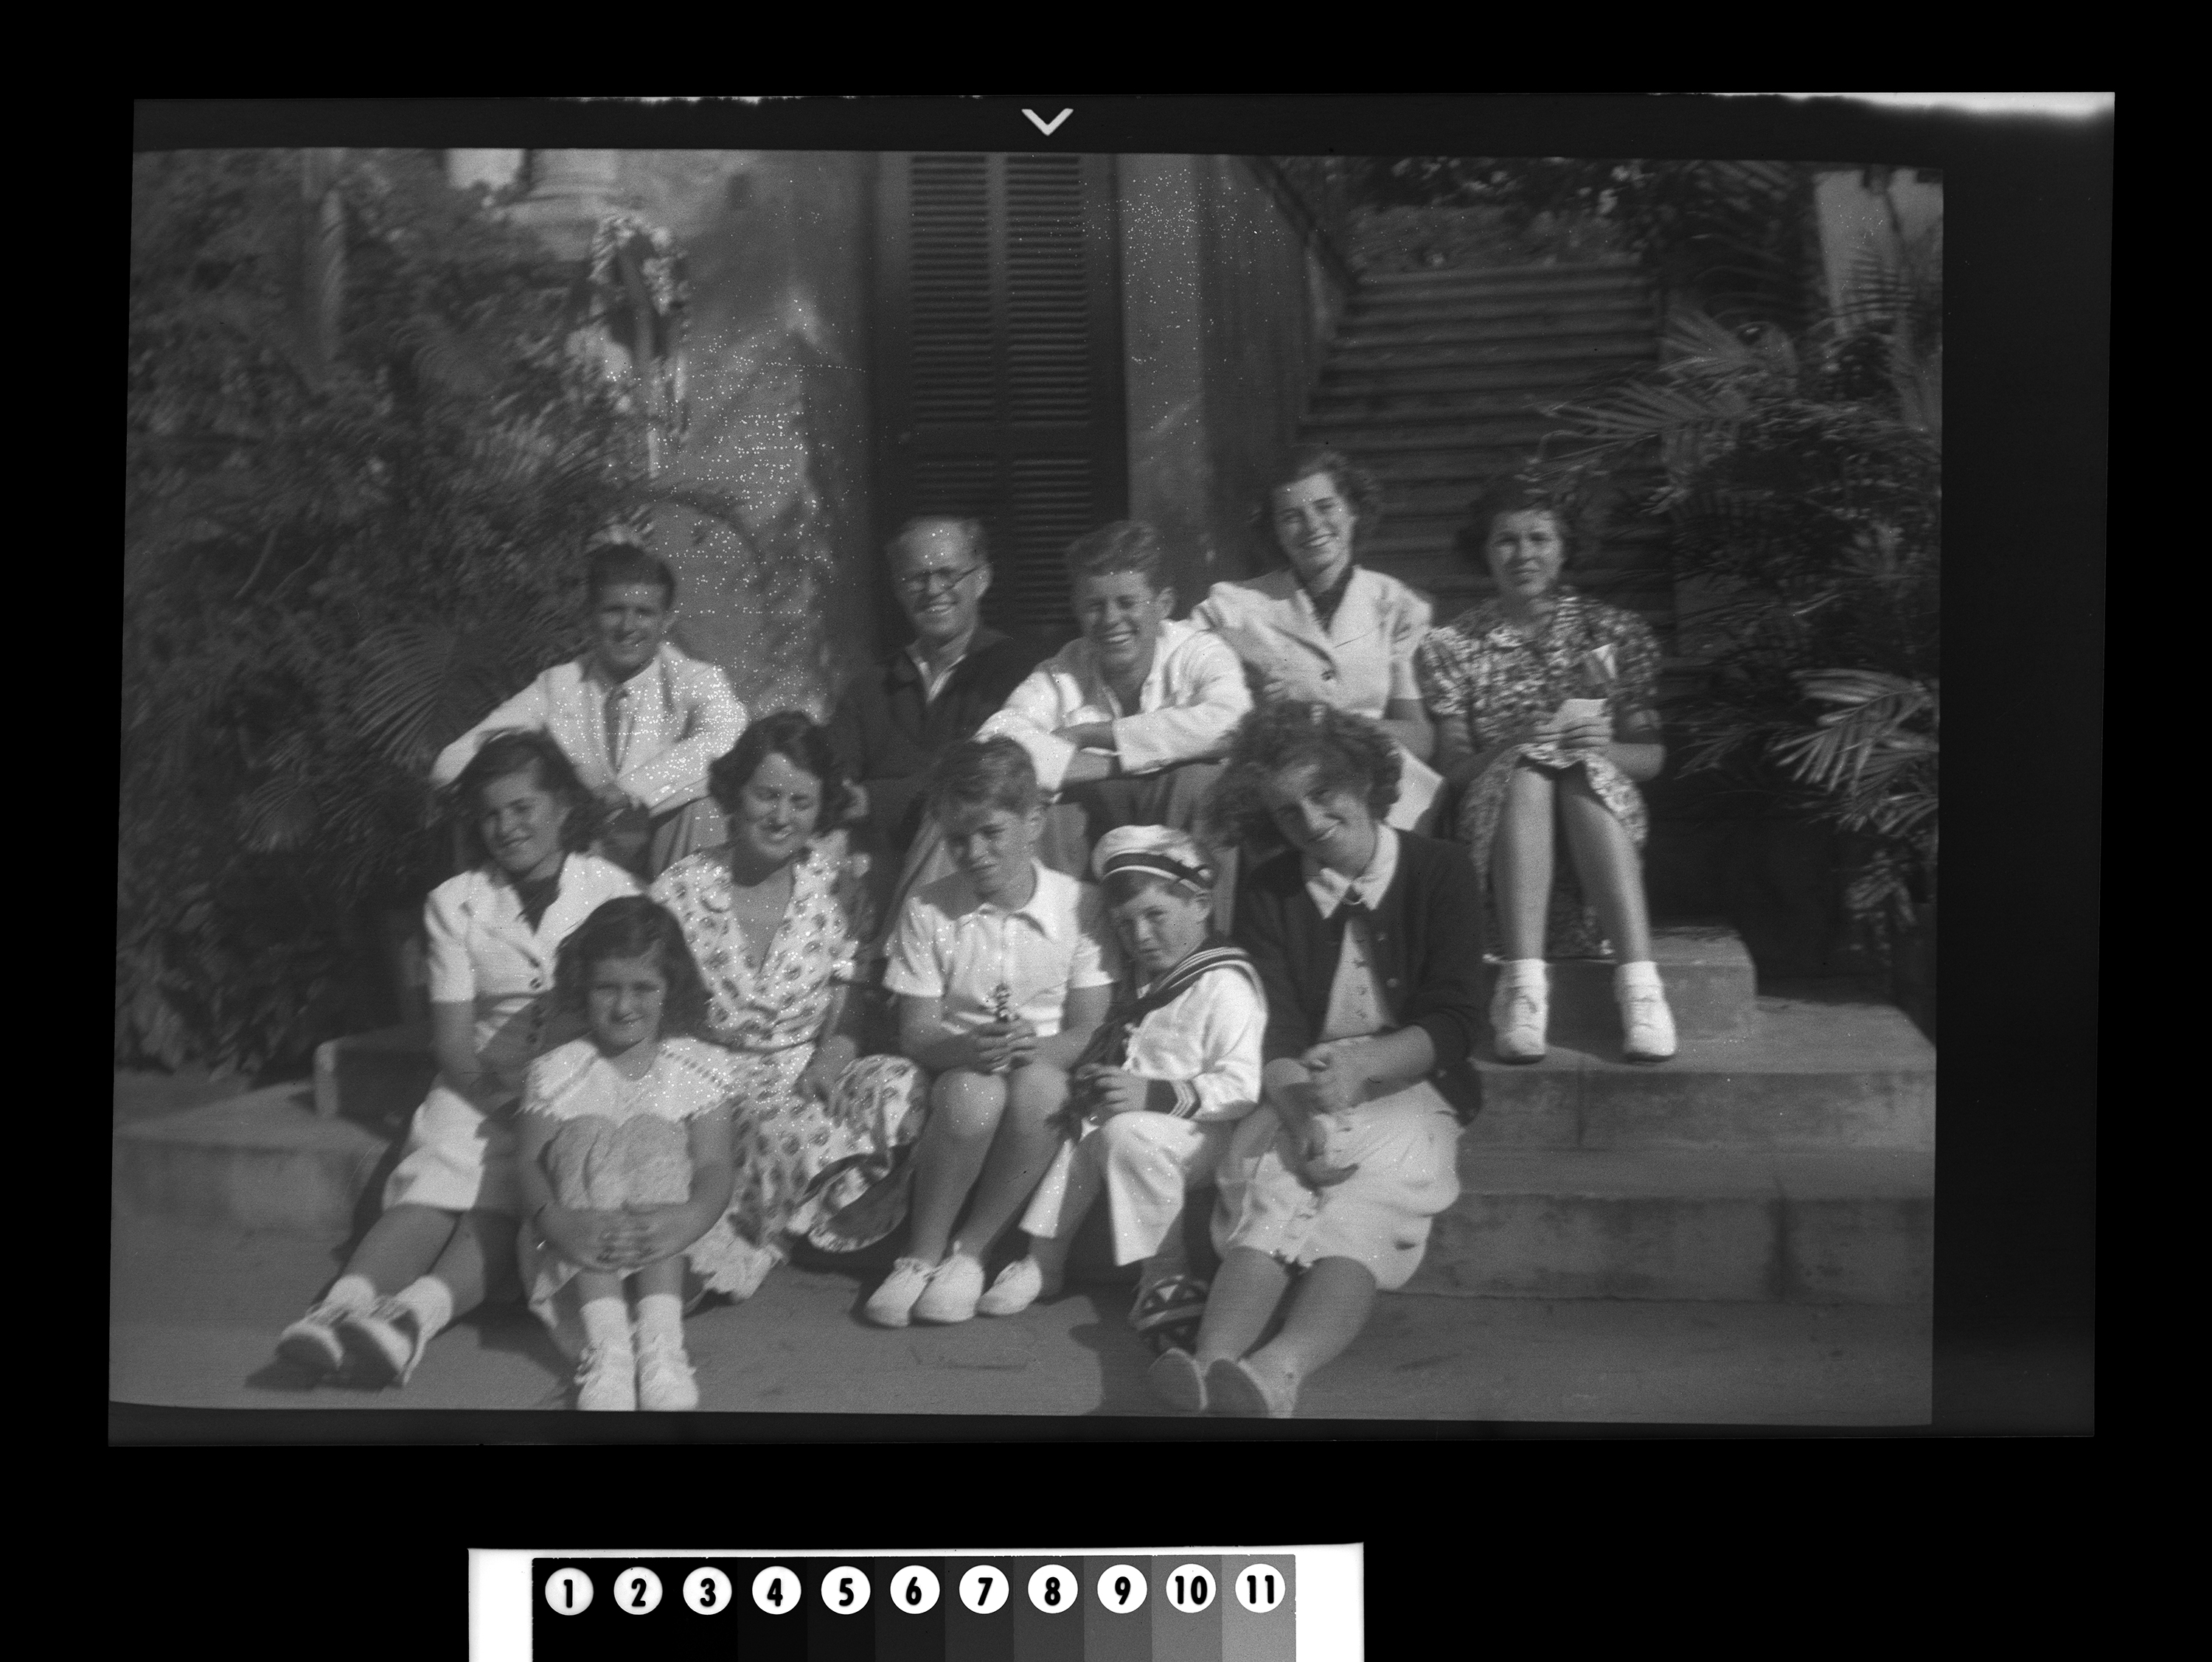 KFC1145N. Kennedy Family. Palm Beach, Florida, 25 December 1937 1 negative (black-and-white; 2 1/4 x 3 1/4 inches; film/plastic: nitrate) © John F. Kennedy Library Foundation